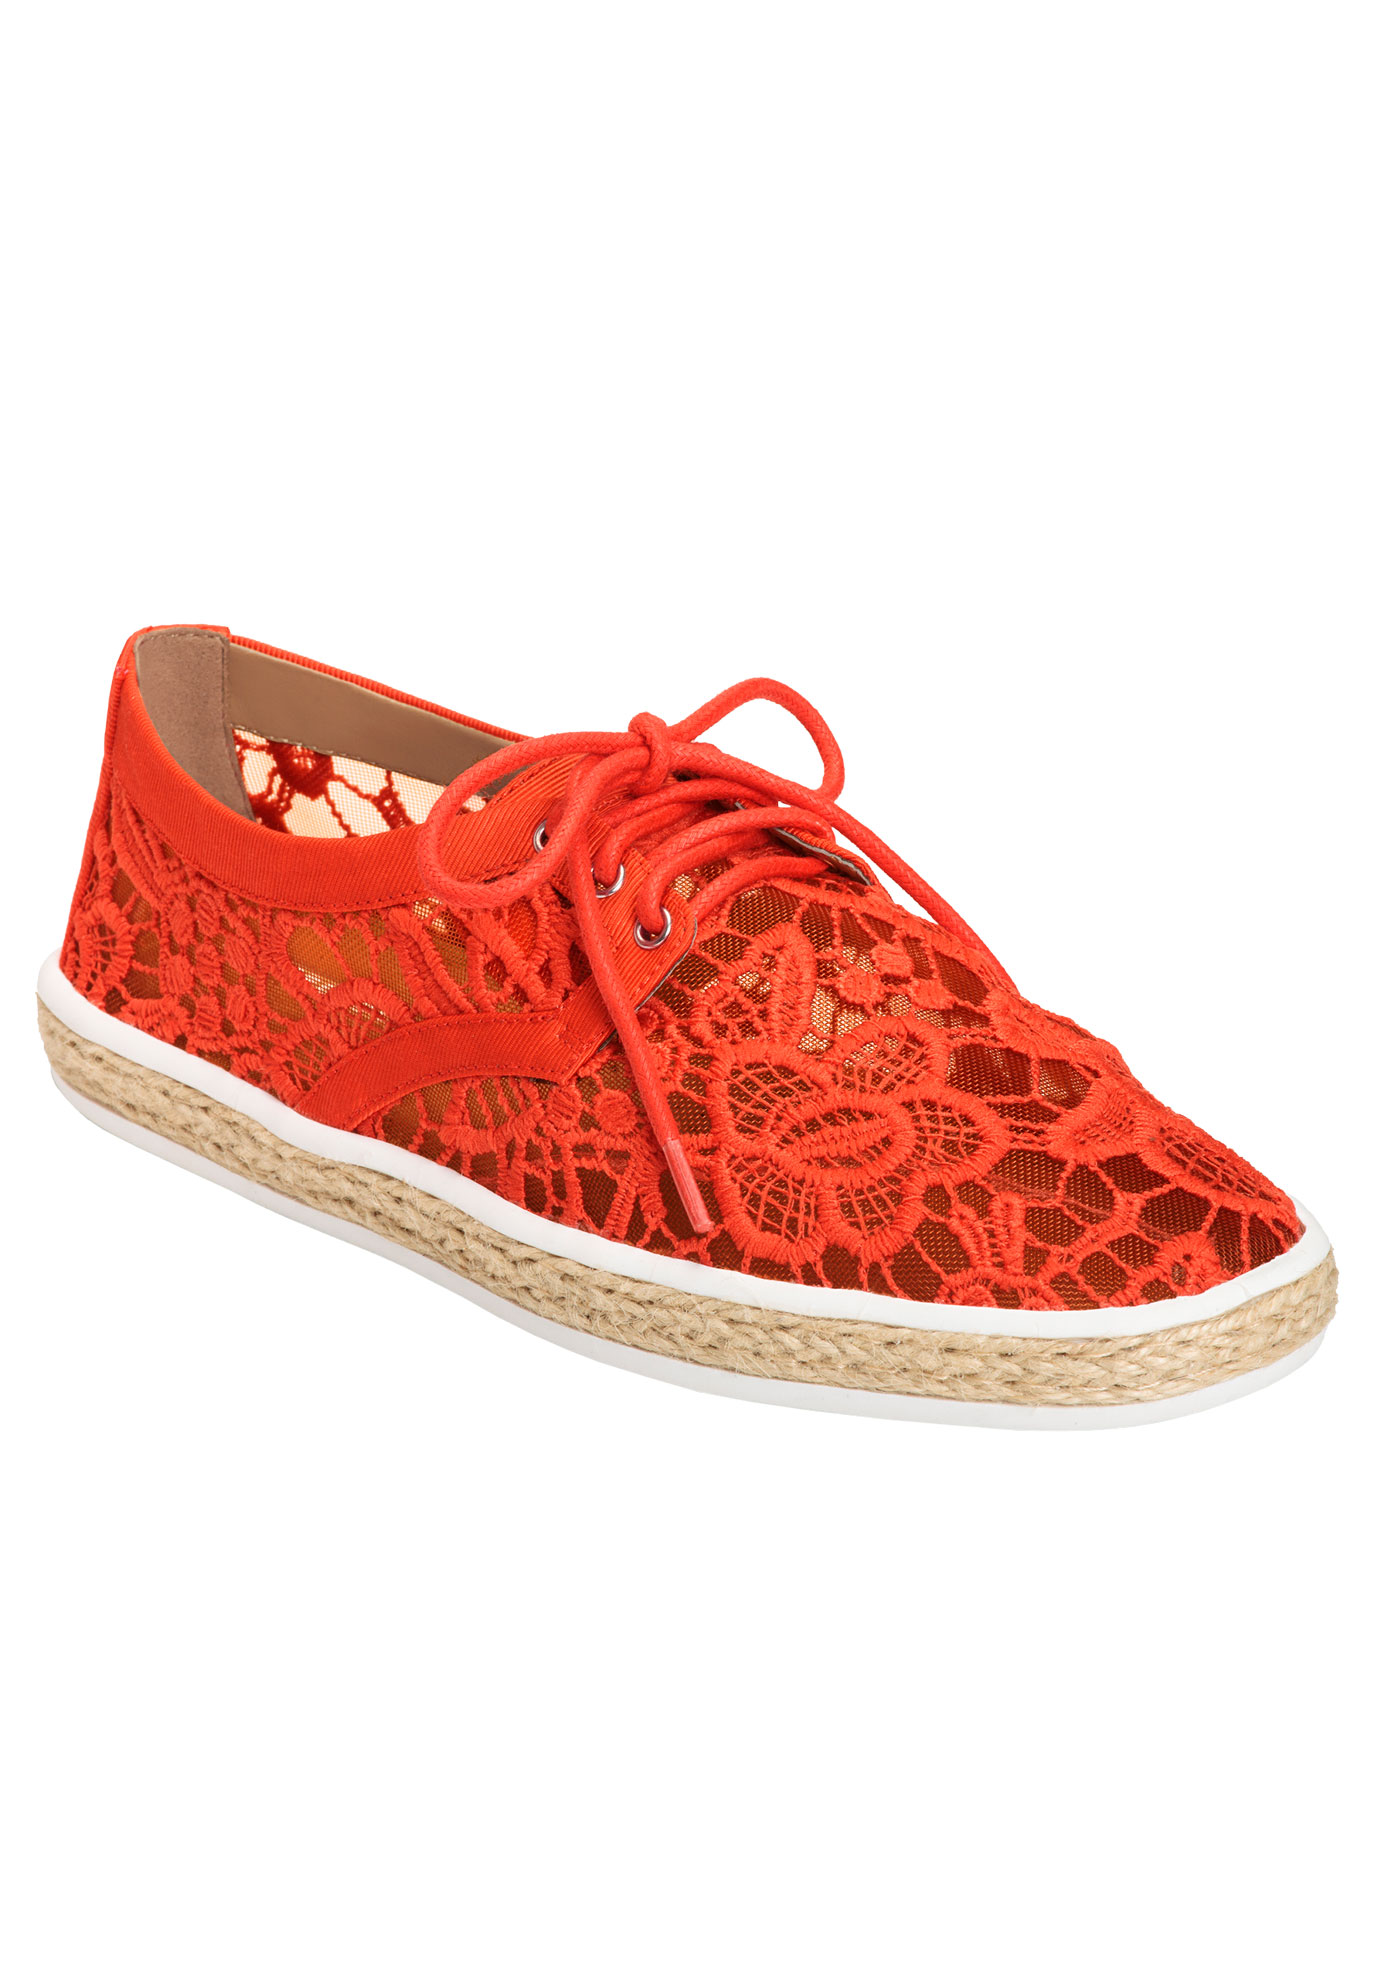 Fundraiser Sneakers by Aerosoles®, CORAL COMBO, hi-res